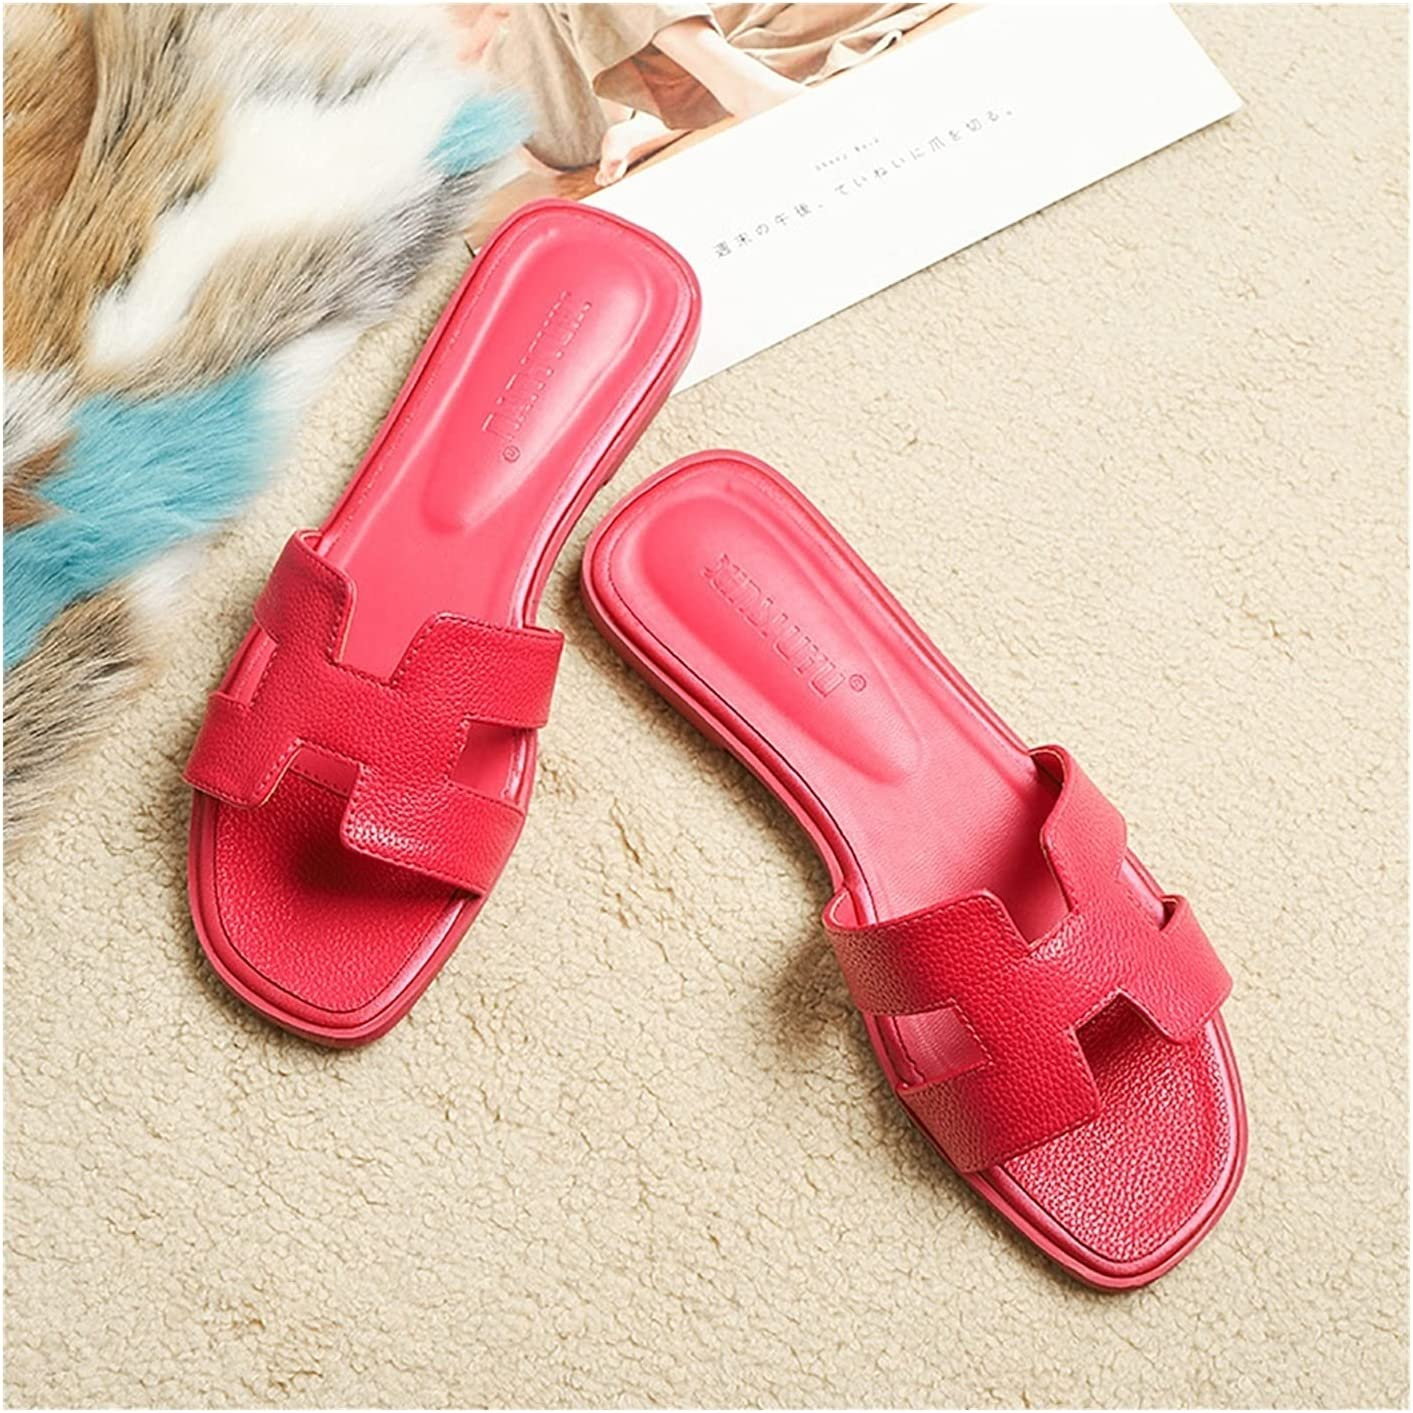 JDGFF H Band-Sandals for Women Flats Slide Sandals Summer Outdoor Slippers Low Heel Leather Square Open Toe Slippers Mules (Color : Red B, Size : 42EU)